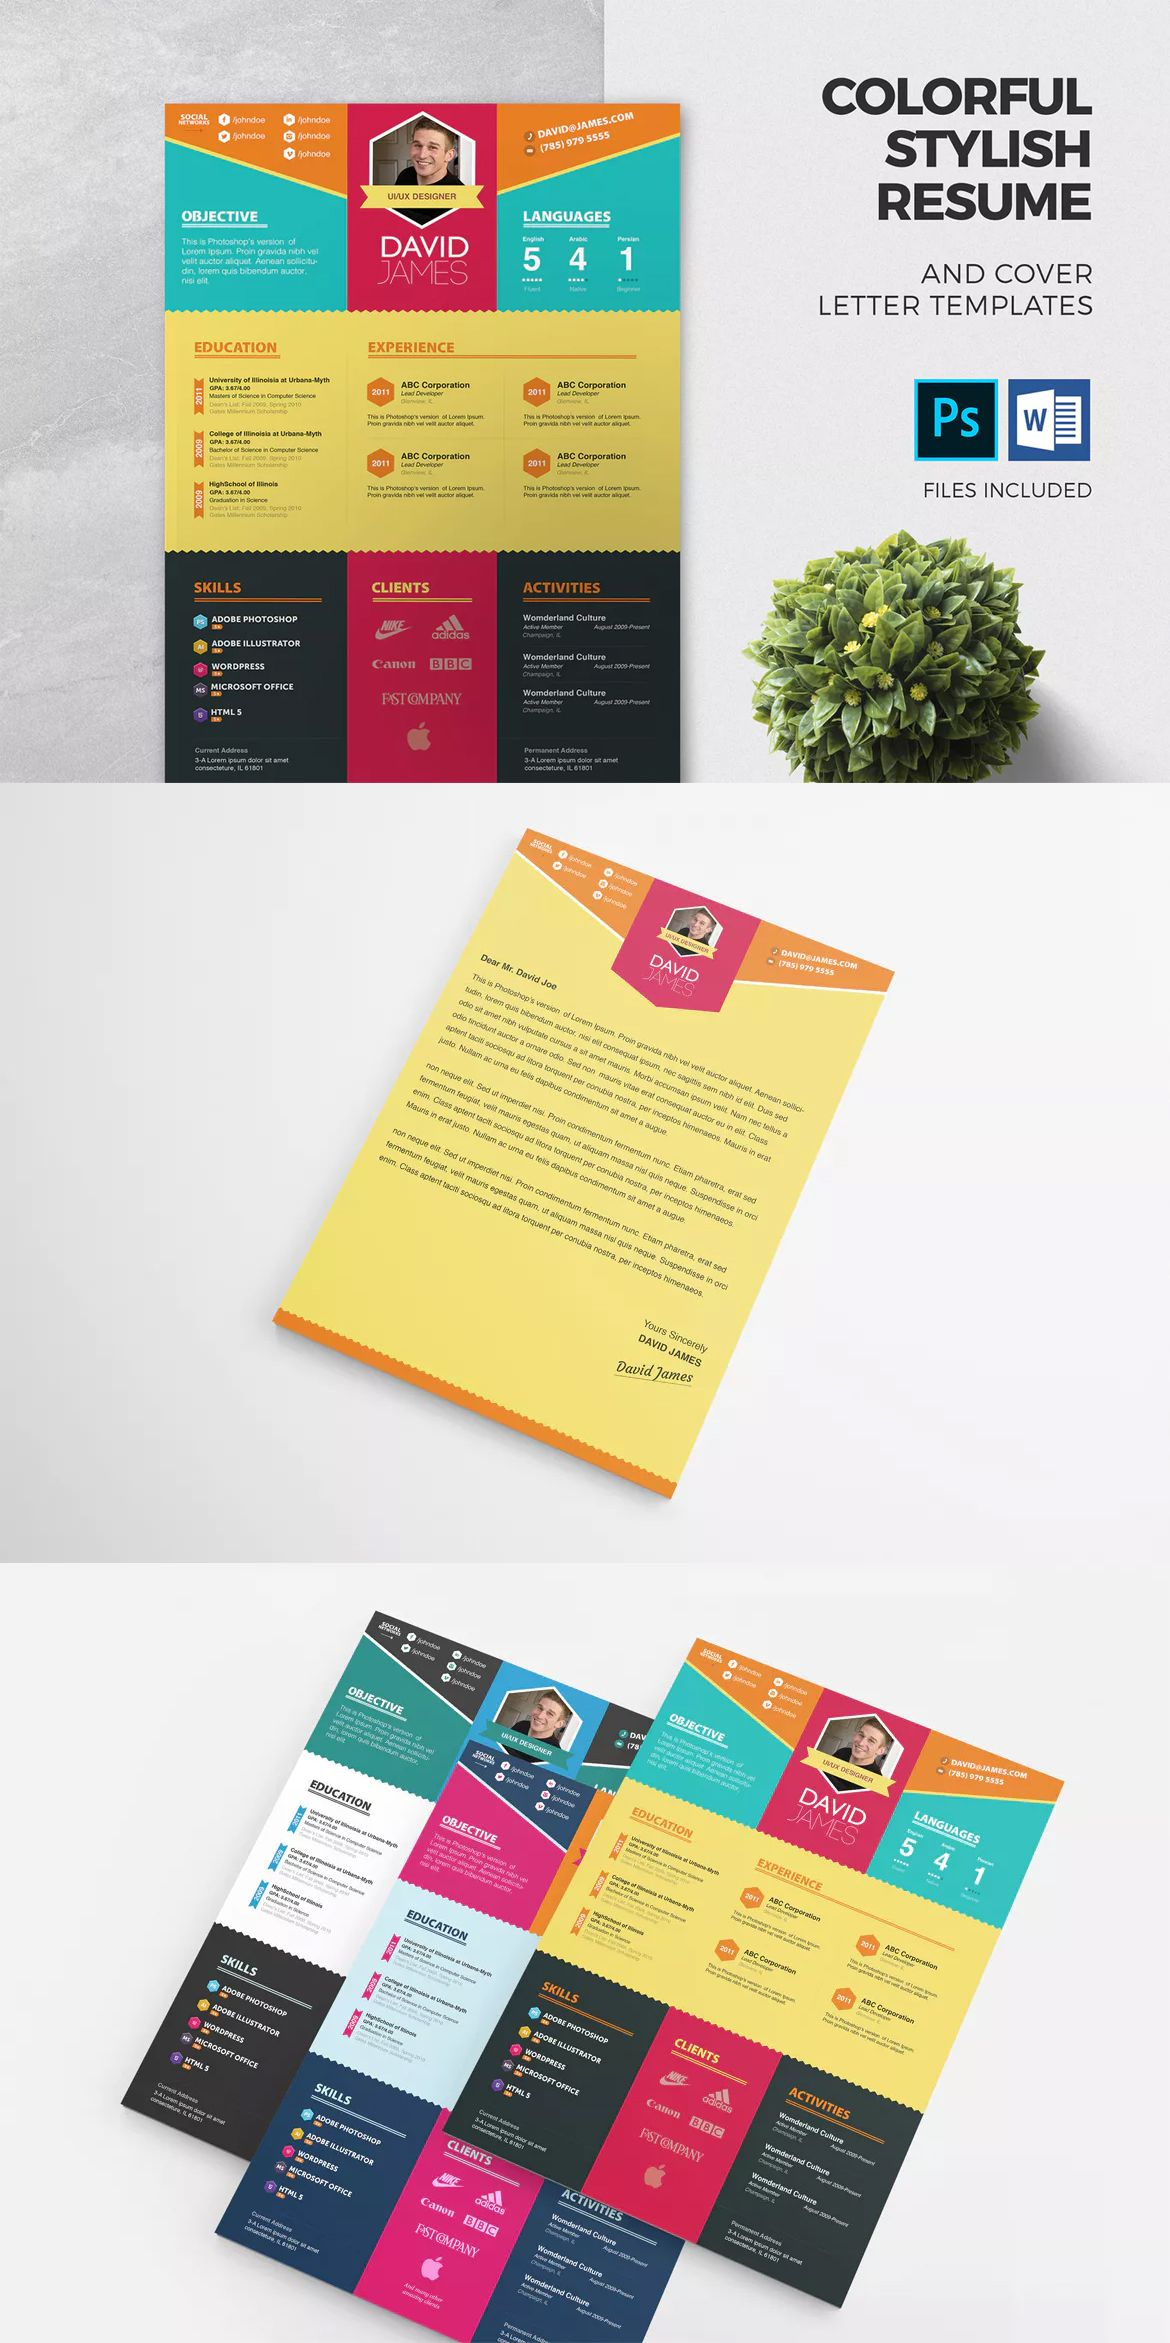 Colorful Stylish Resume and Cover Letter Template PSD